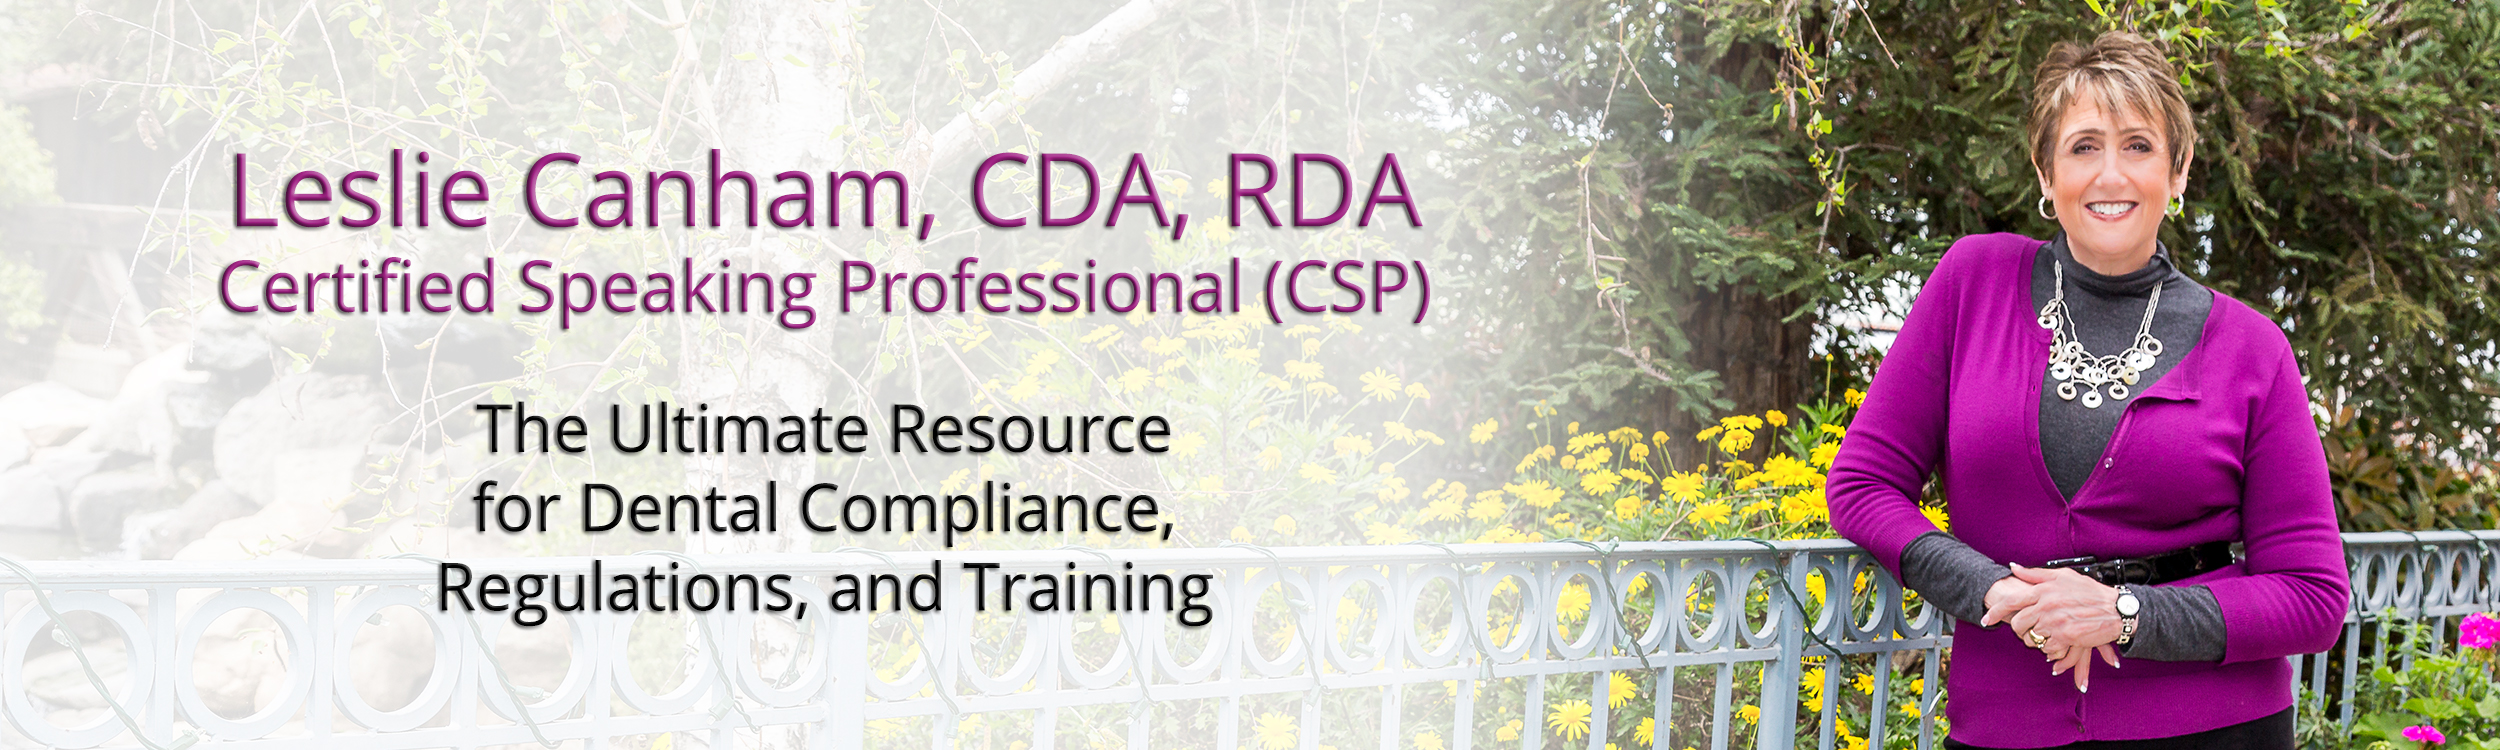 Leslie Canham, The Ultimate Resource for Dental Compliance, Regulations, and Training